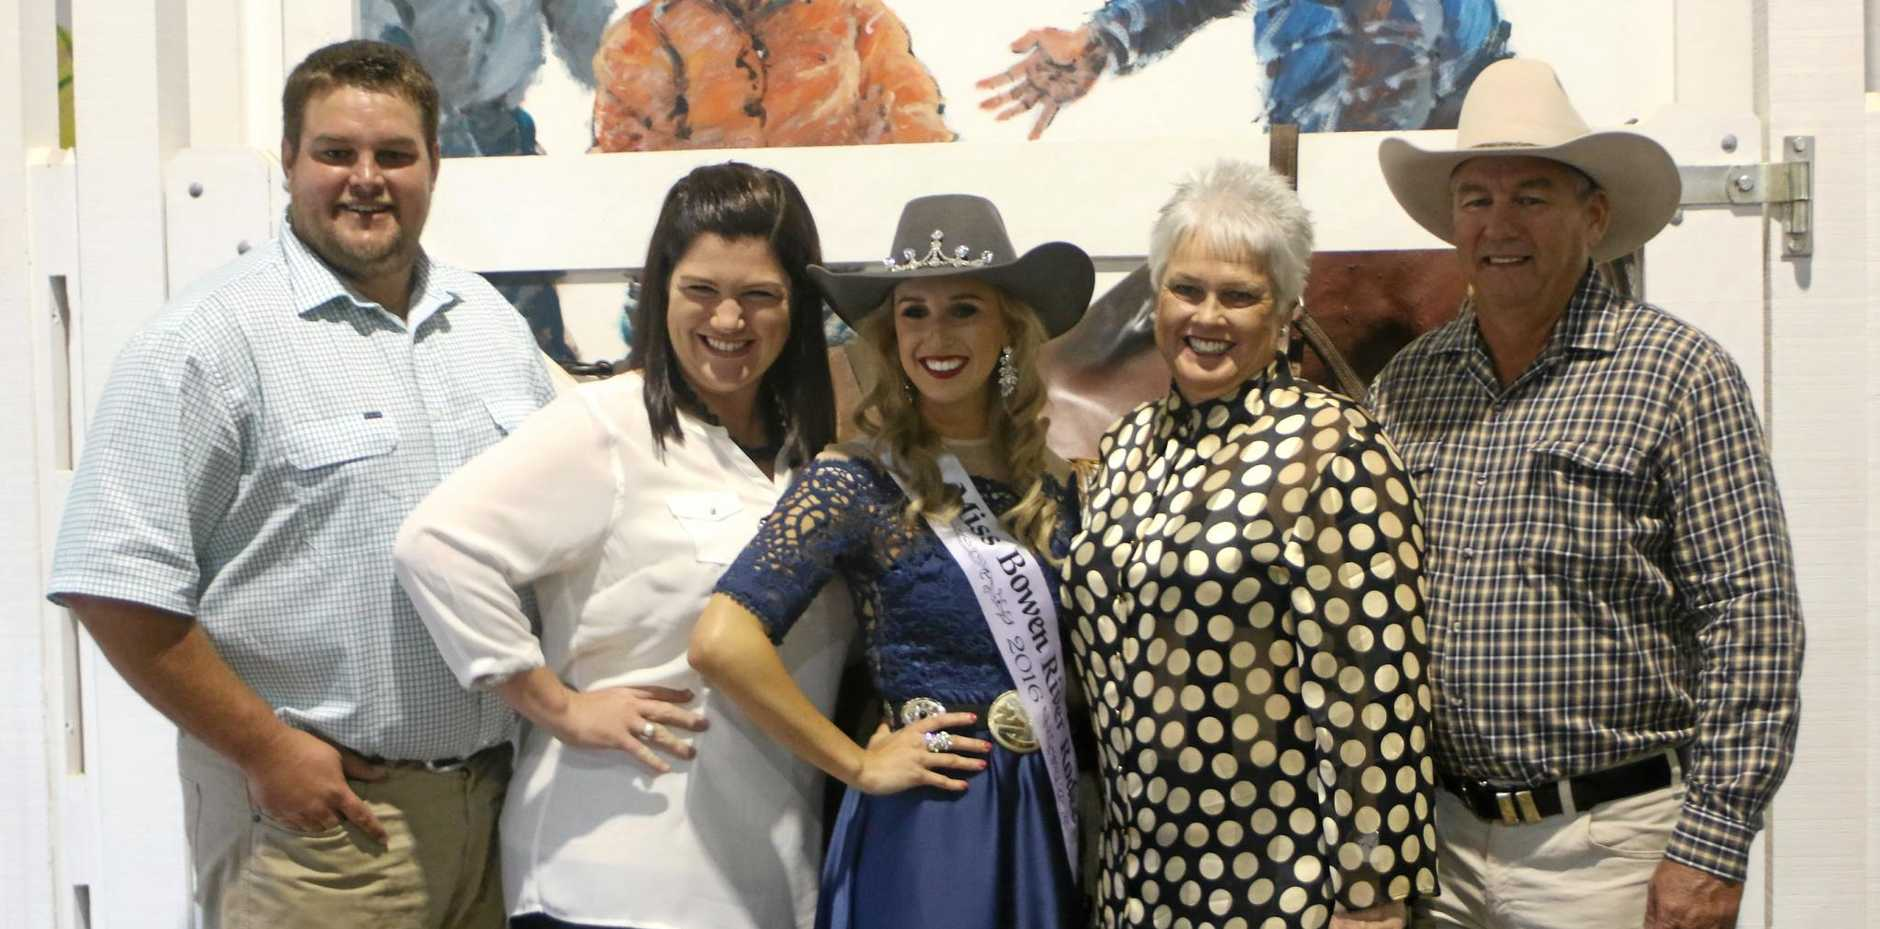 Miss Rodeo Australia entrant Emma Deicke (centre) representing Bowen River, with her family Joh, Clare, Pauline and Marvin Deicke at the Rodeo Heritage Centre.